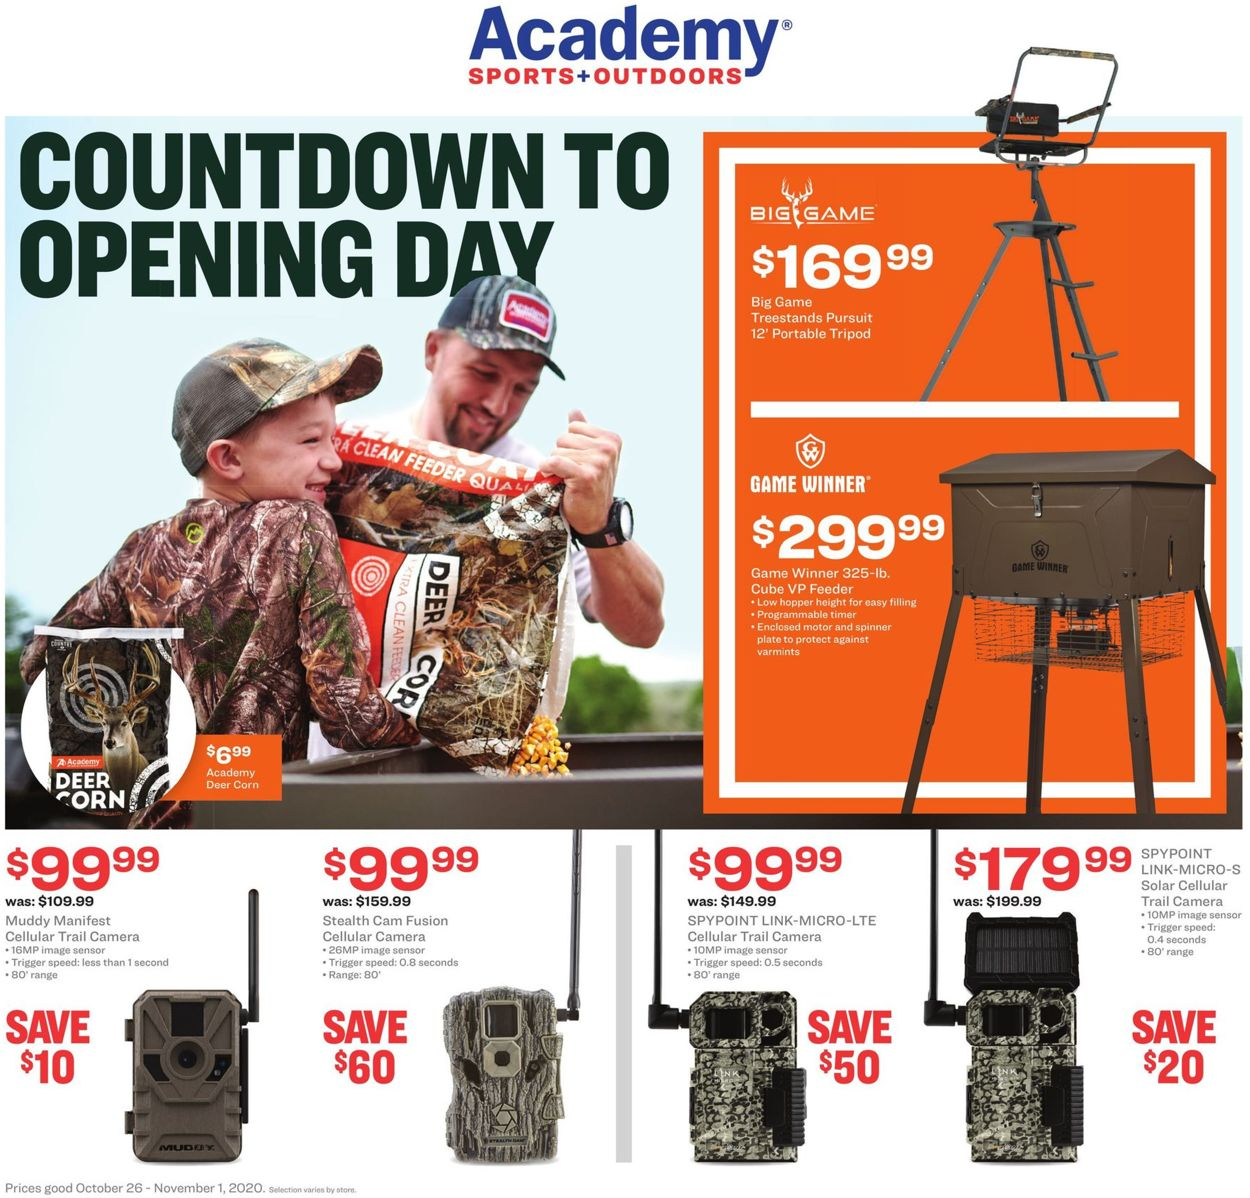 Jayc Foods Christmas Countdown 2020 Academy Sports Current weekly ad 10/26   11/01/2020   frequent ads.com